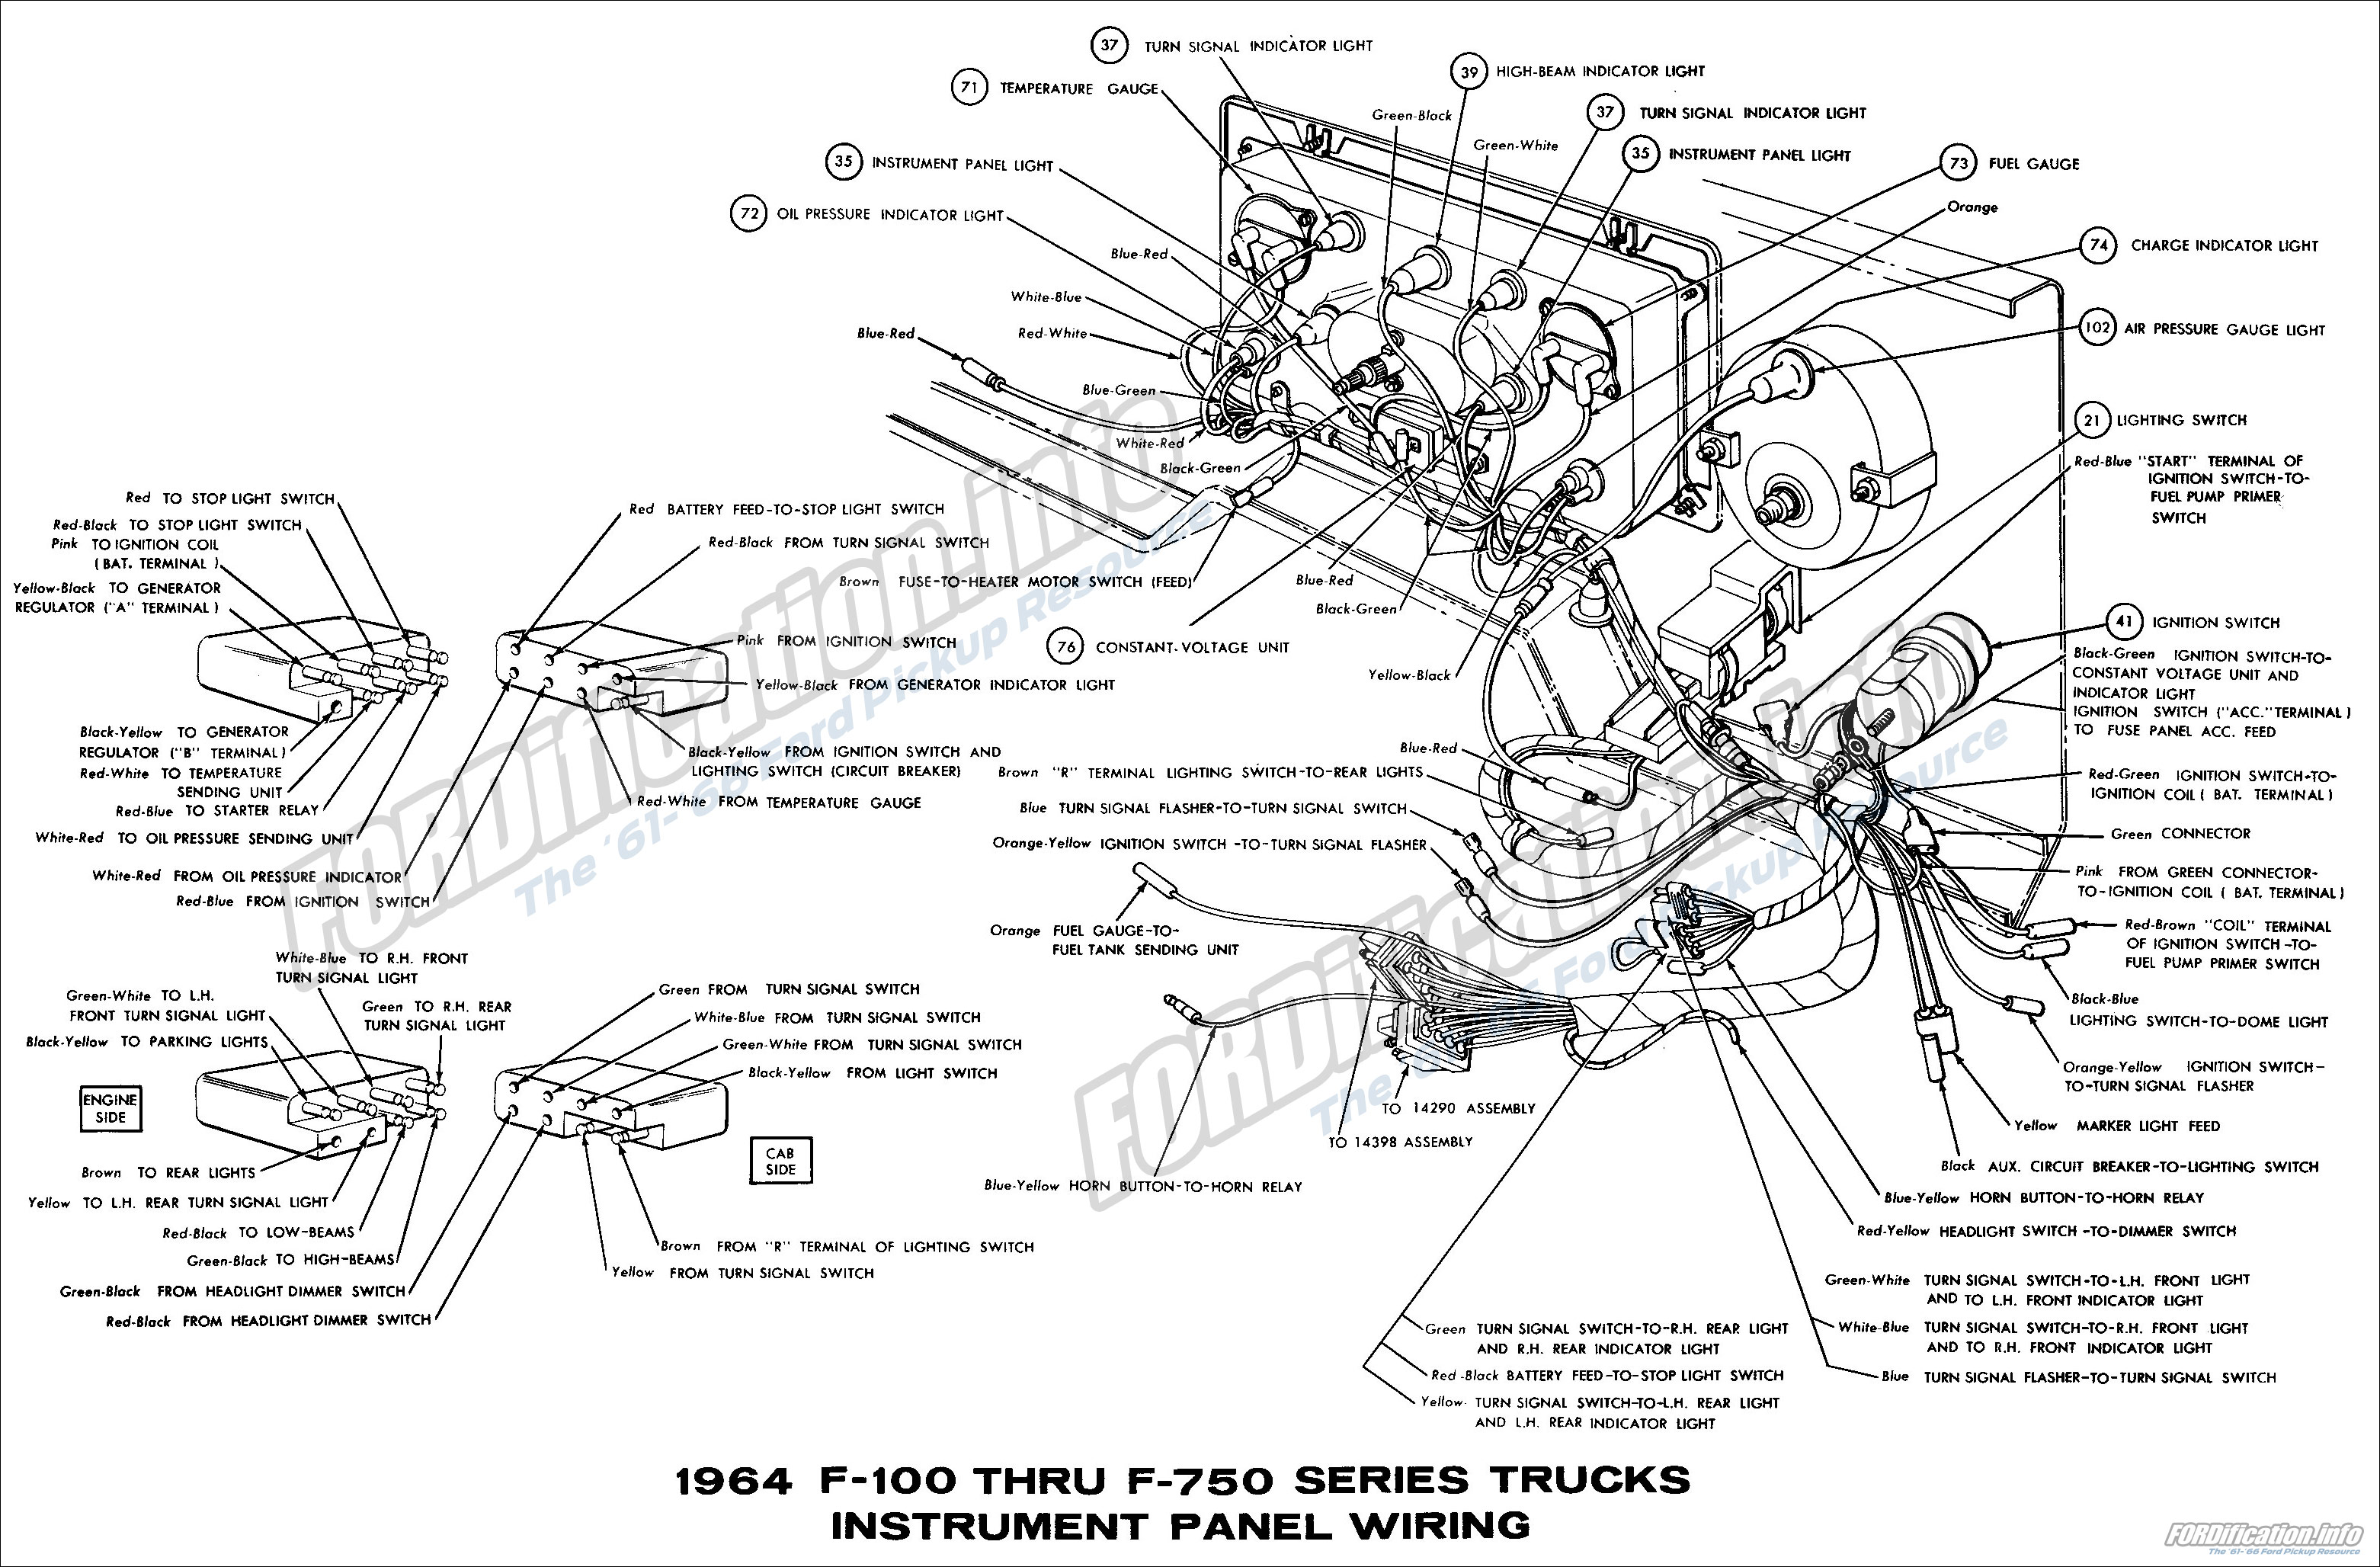 Ford Dash Light Wiring Diagram